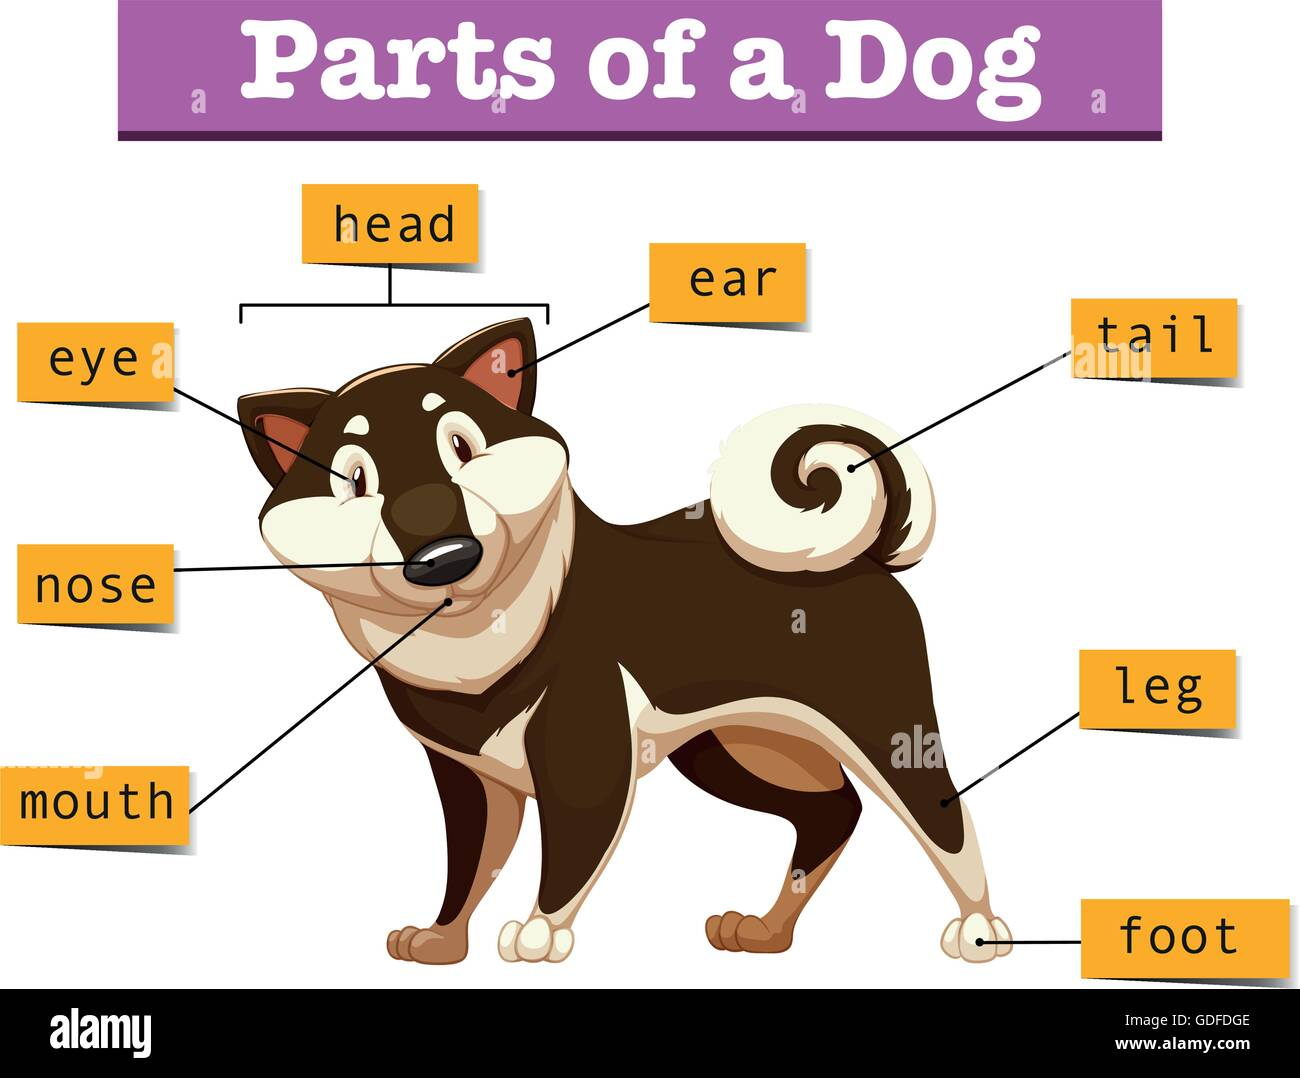 Diagram showing different part of dog illustration stock vector art diagram showing different part of dog illustration ccuart Choice Image